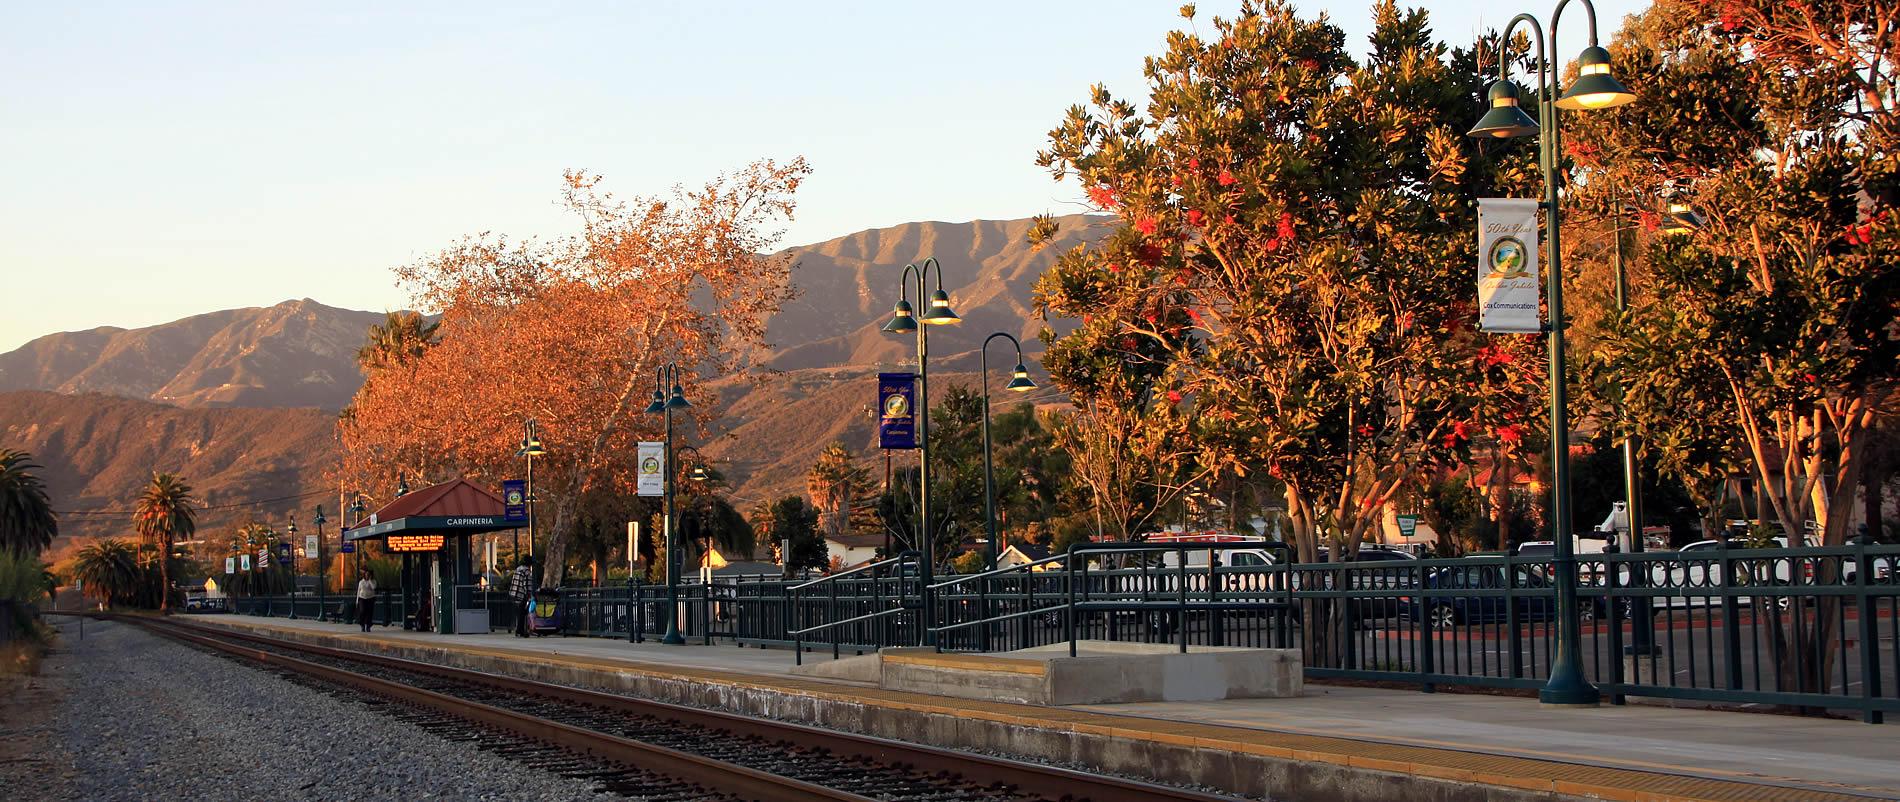 carpinteria train station